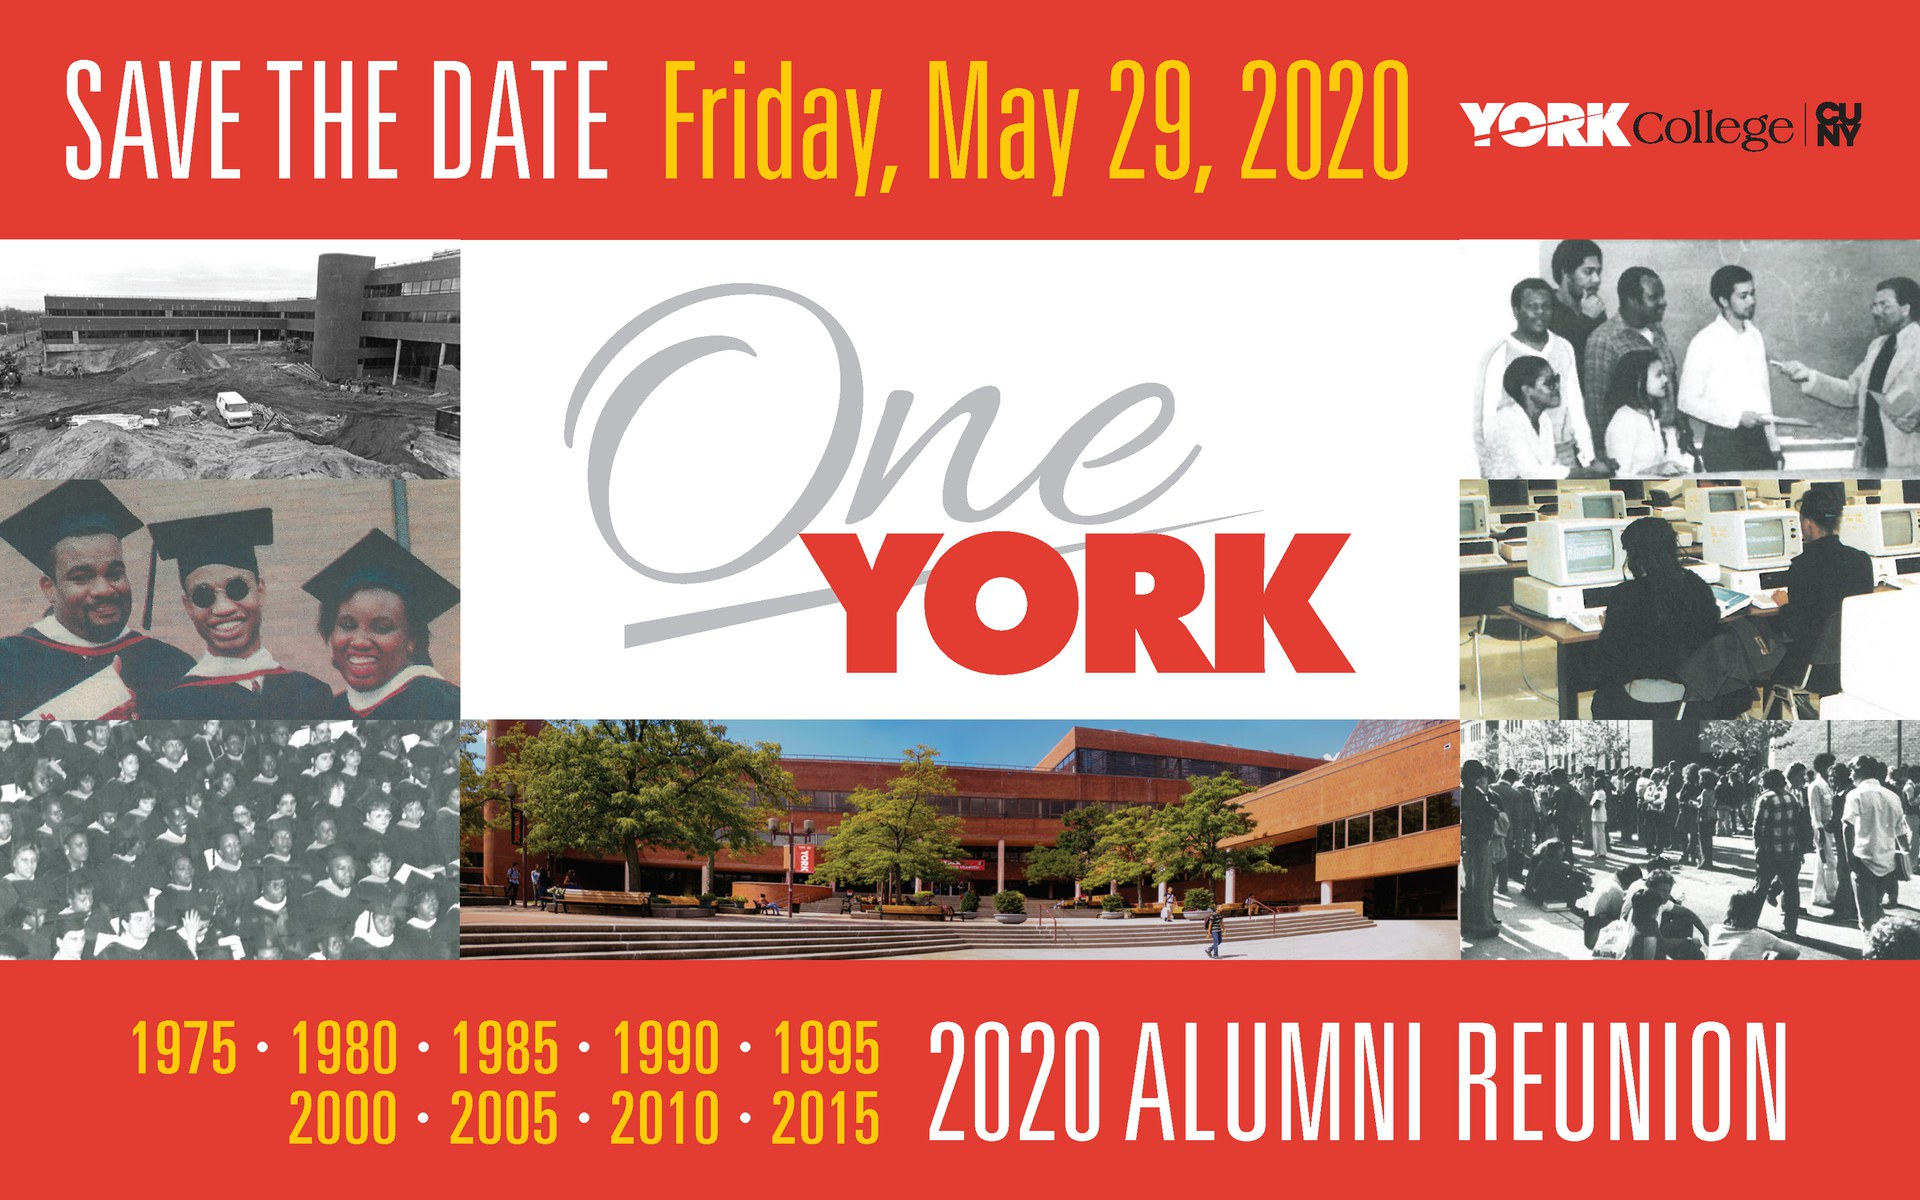 Save the Date Friday, May 29, 2020 York Colleg CUNY 1975, 1980, 1985, 1990, 1995, 2000, 2005, 2010, 2015